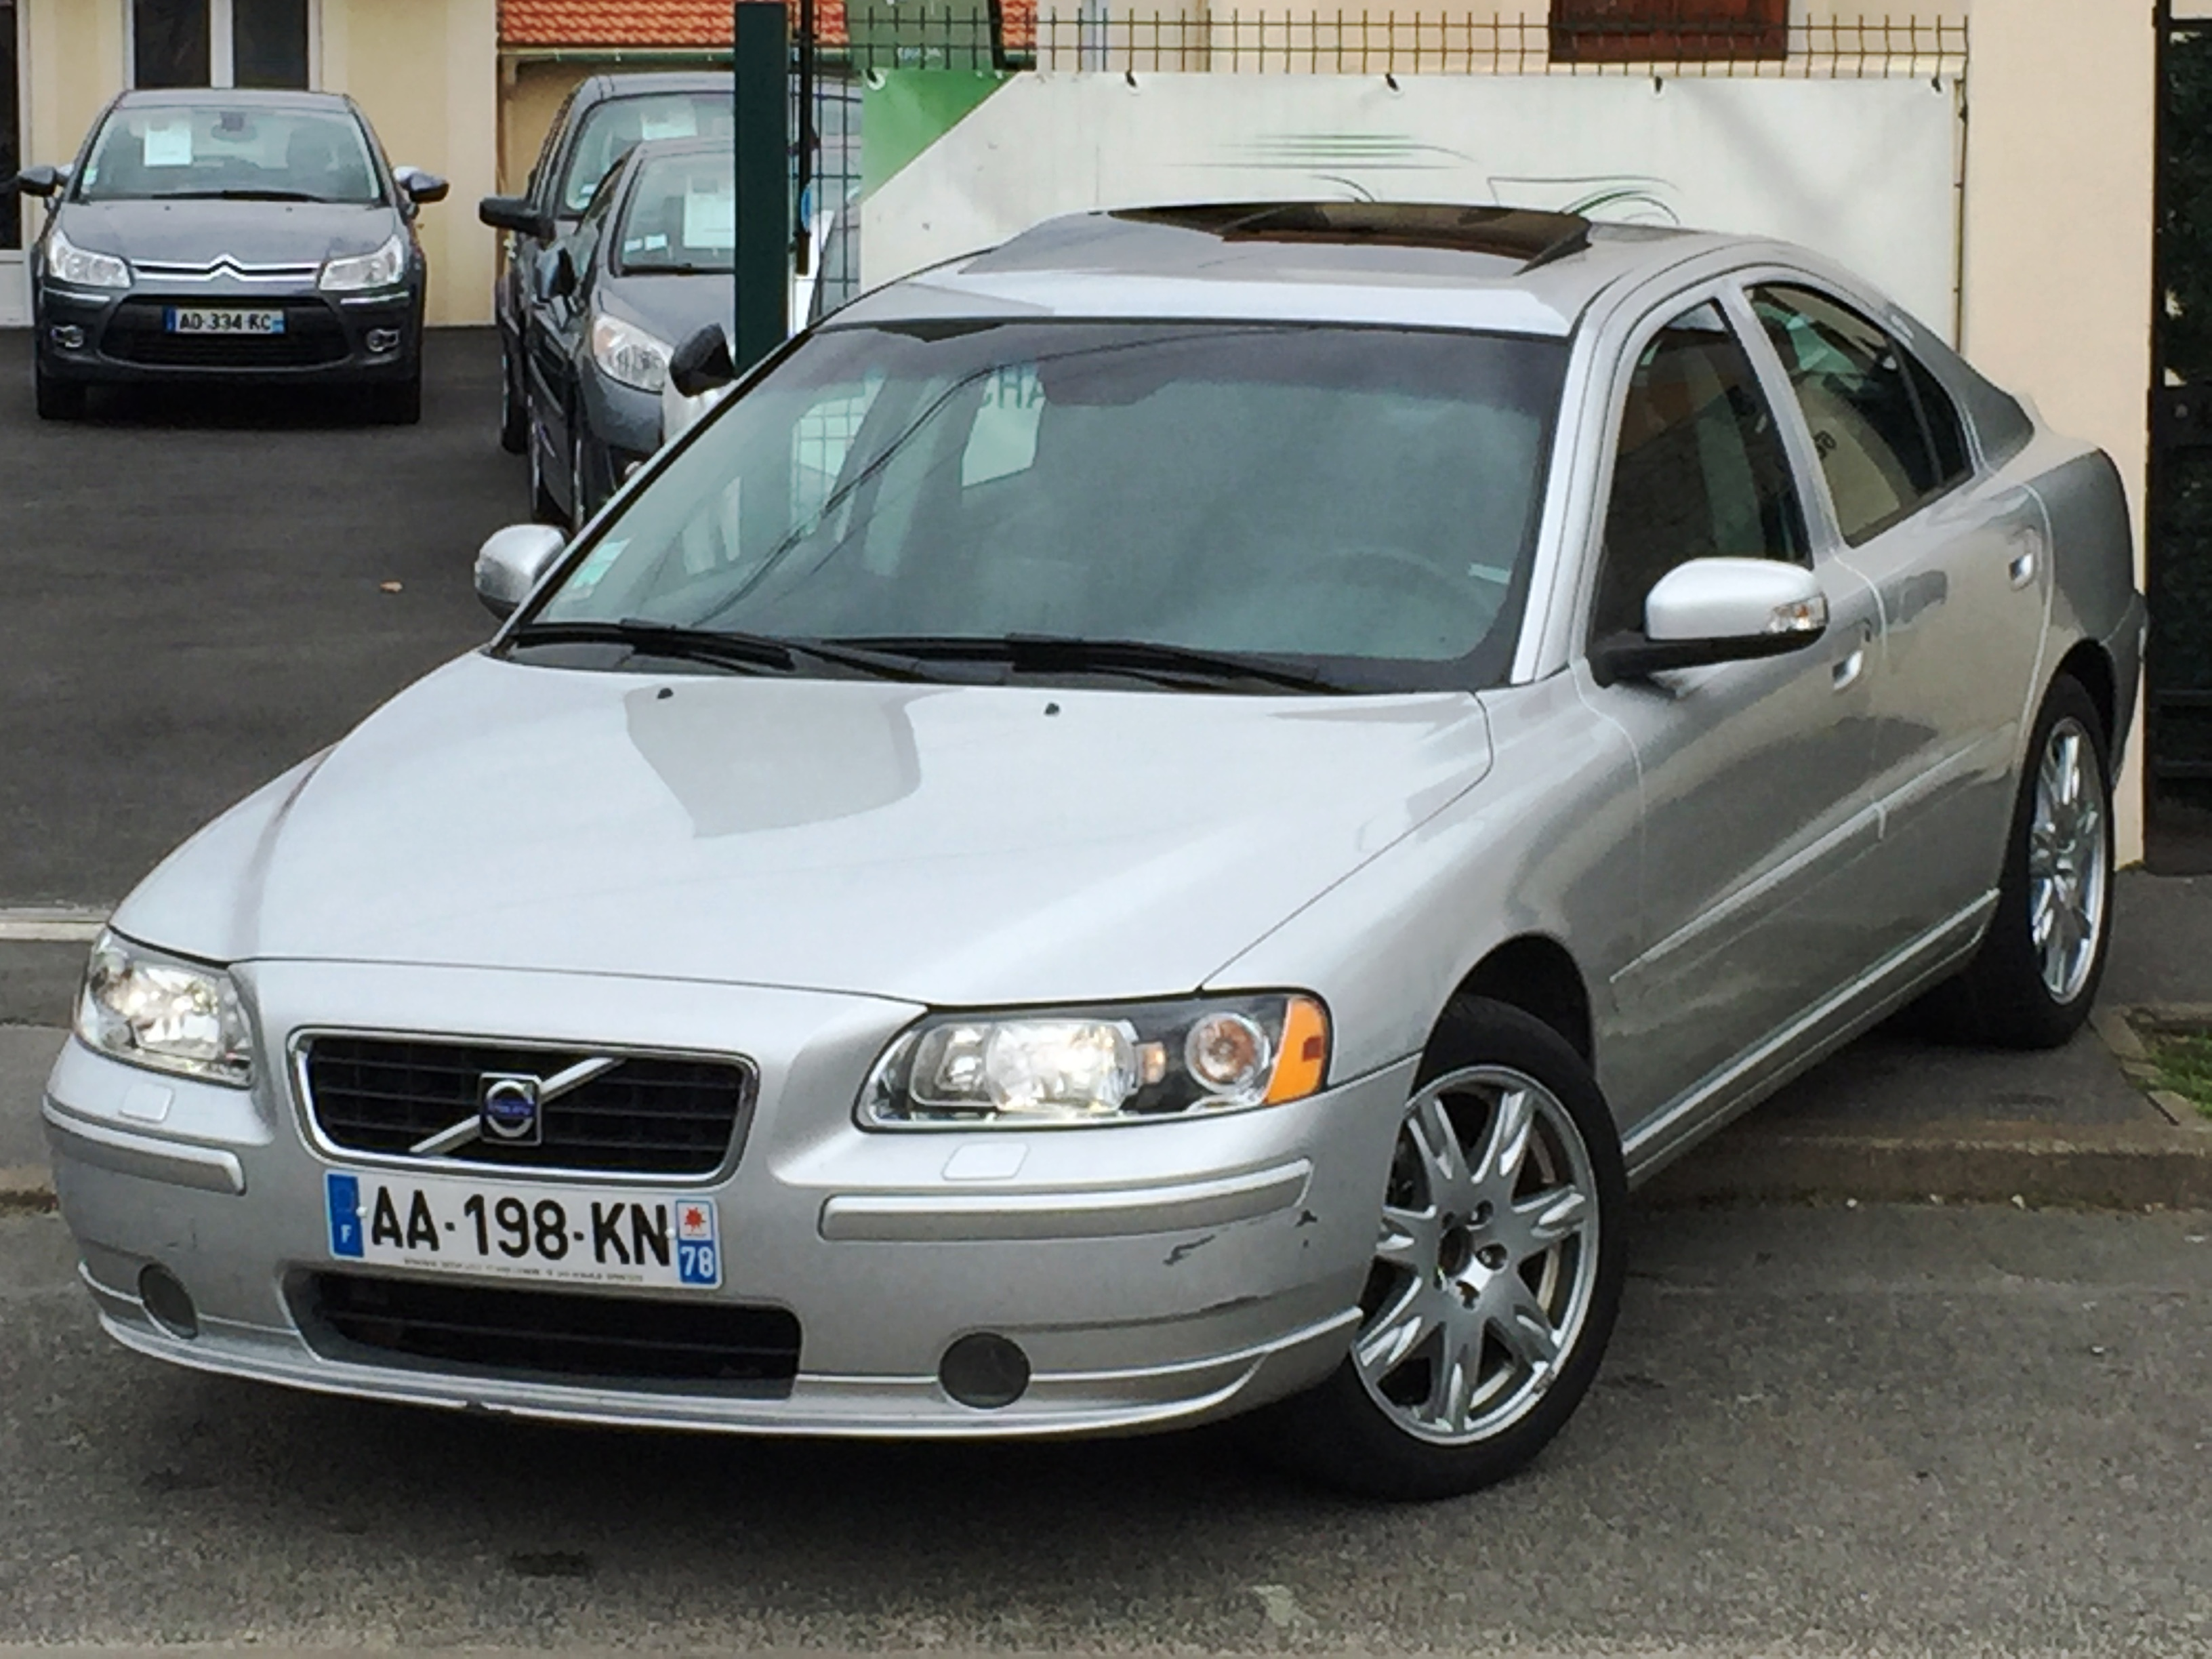 voiture volvo s60 2 4d 163 sport geartronic a occasion 2009 105754 km 8990 herblay. Black Bedroom Furniture Sets. Home Design Ideas